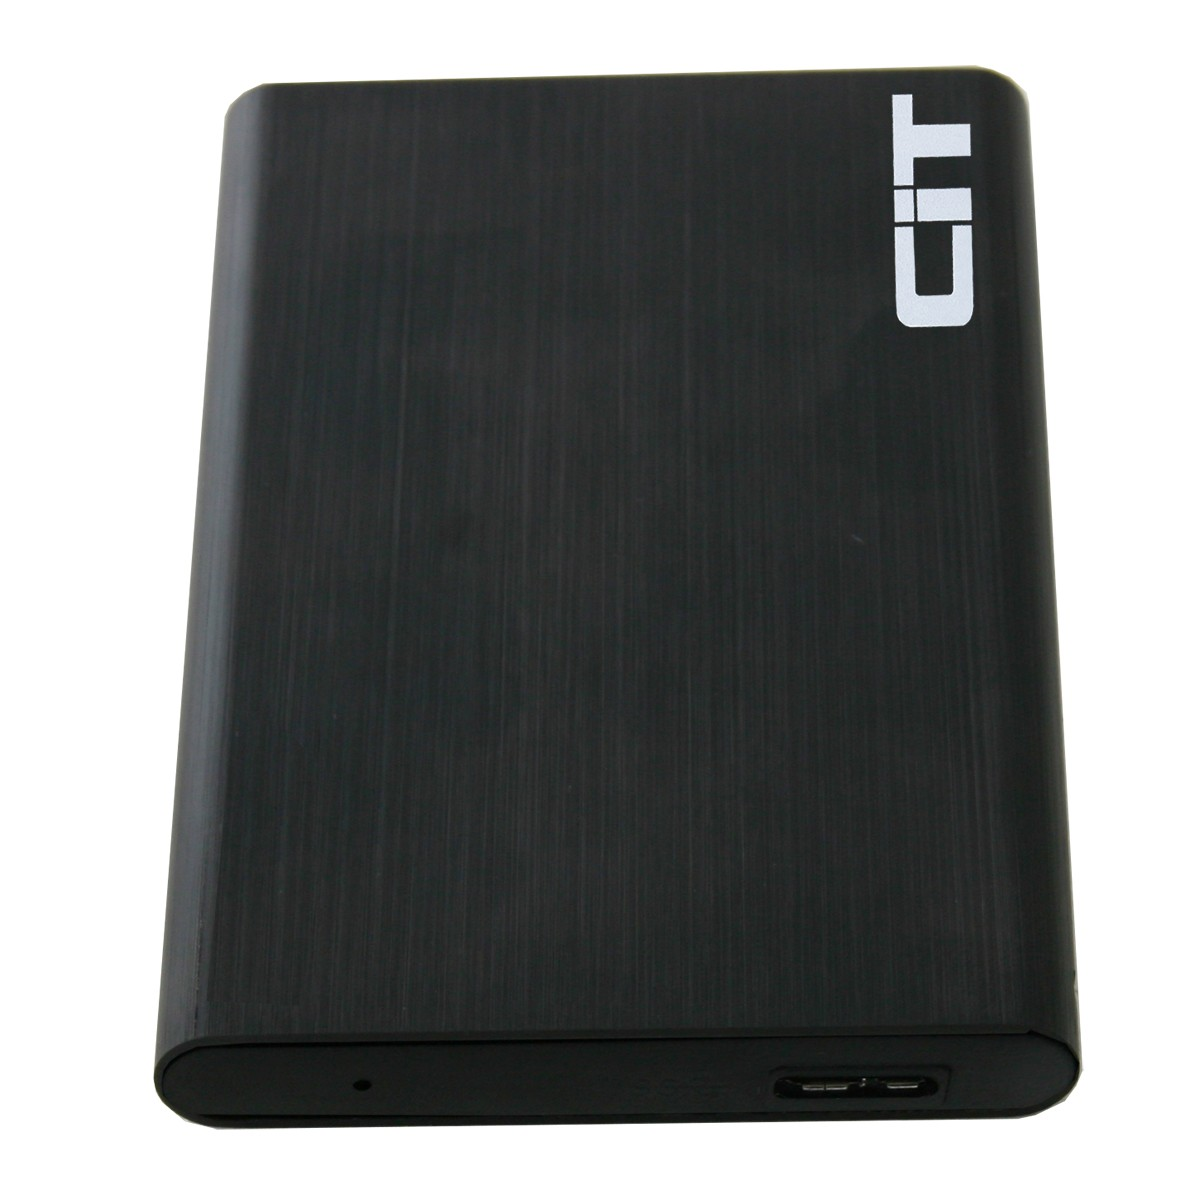 250GB High Speed USB 3.0 External HDD Portable Mobile Hard Drive Disc